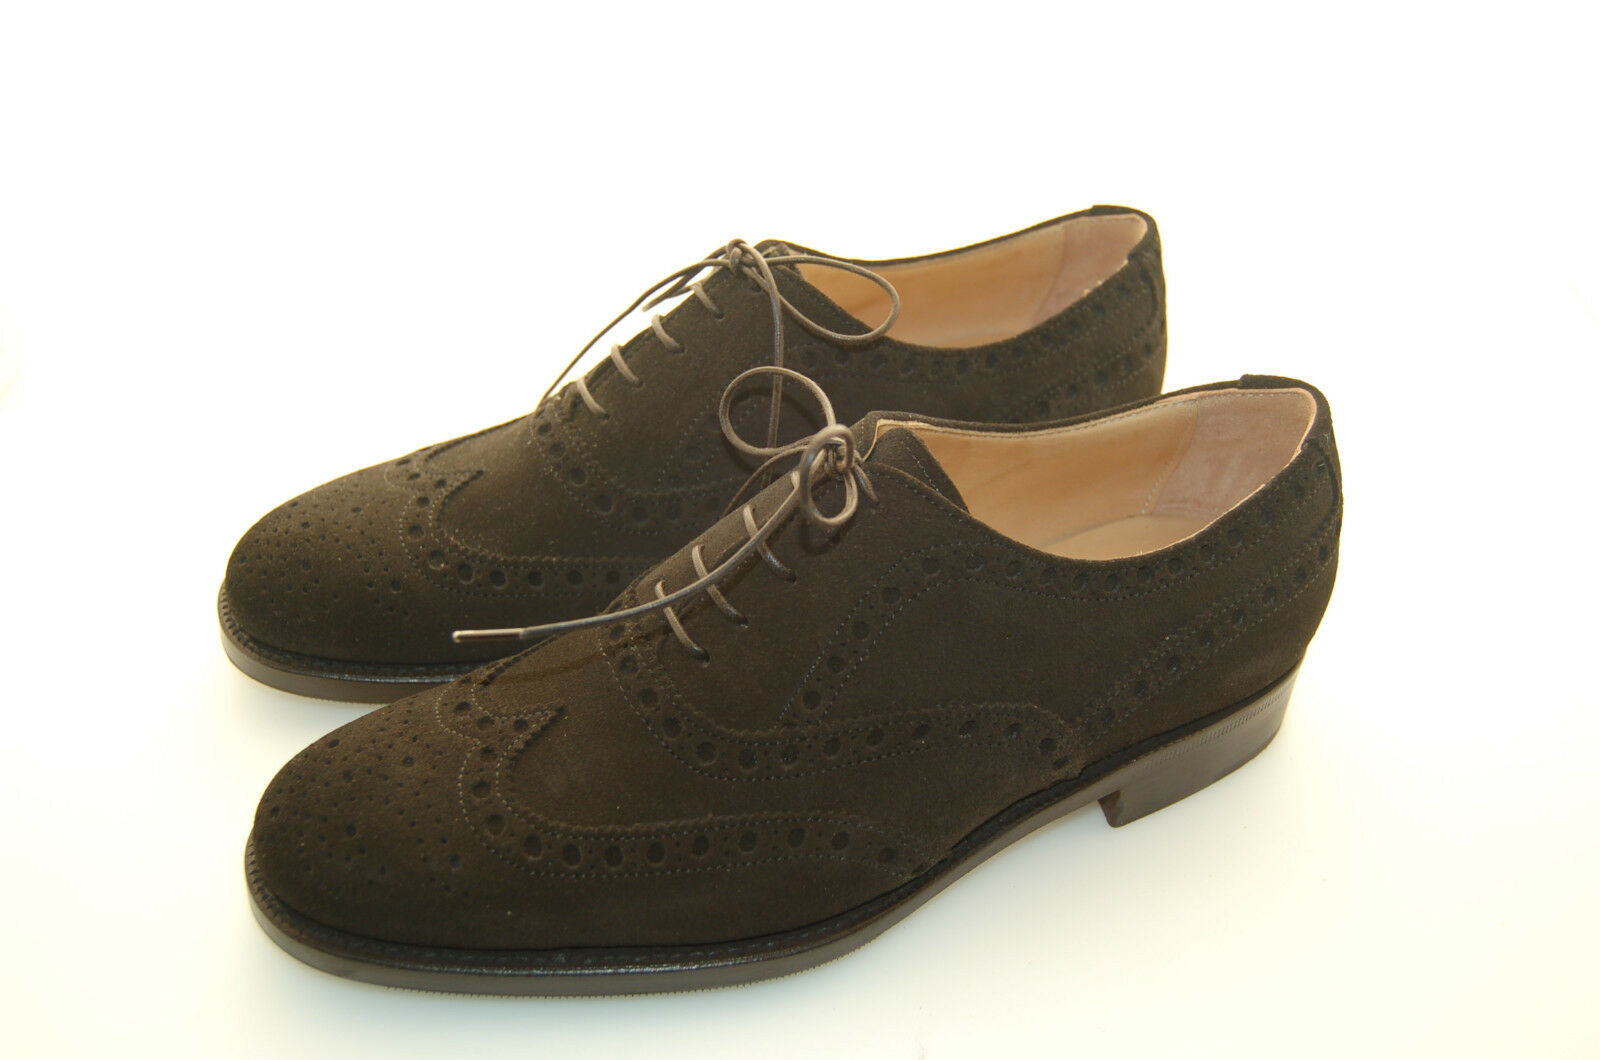 Woman-Woman-Oxford Wingtip W. Perfs & Med-Suede Dark marrón-LTH Sun + 1 2 rubber